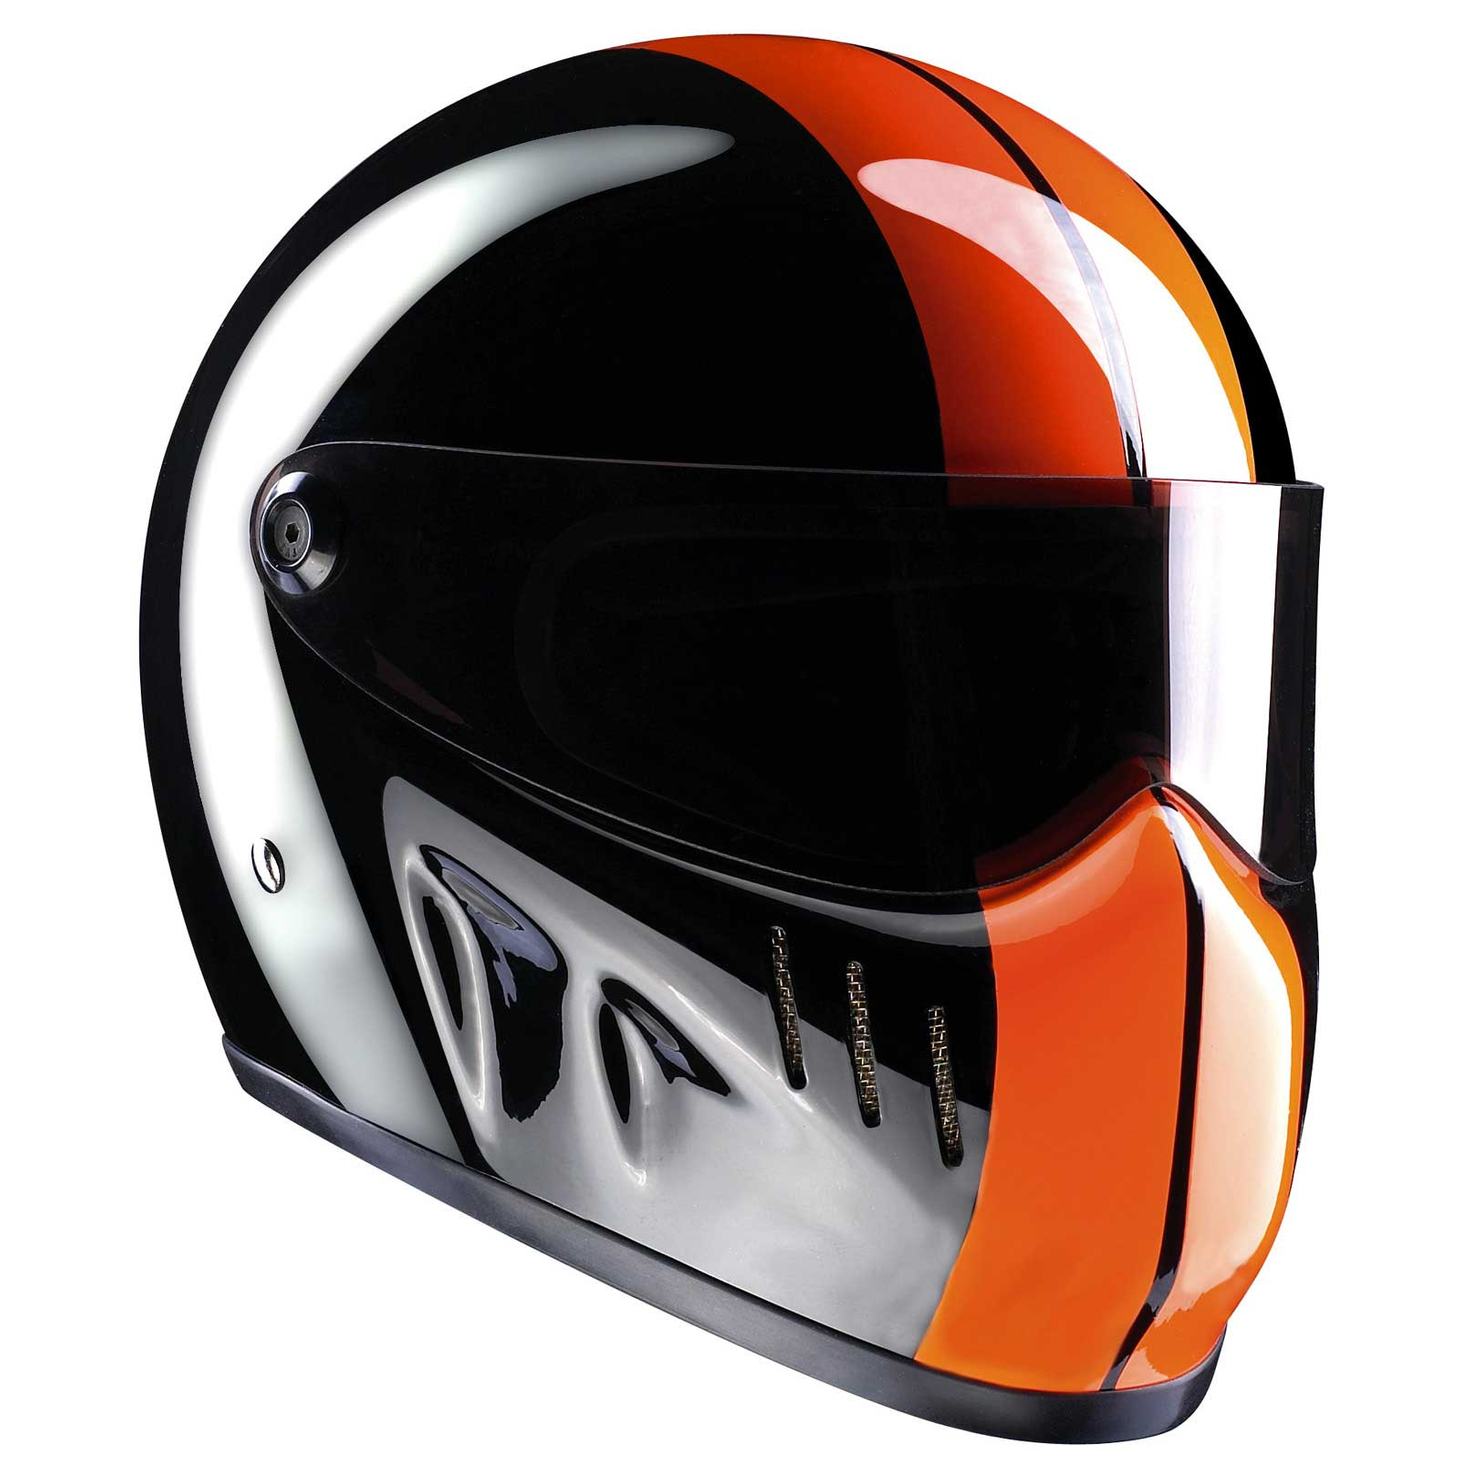 Bandit - XXR - New Motorcycle Helmet - for Streetfighter, Mad Max – Picture 5